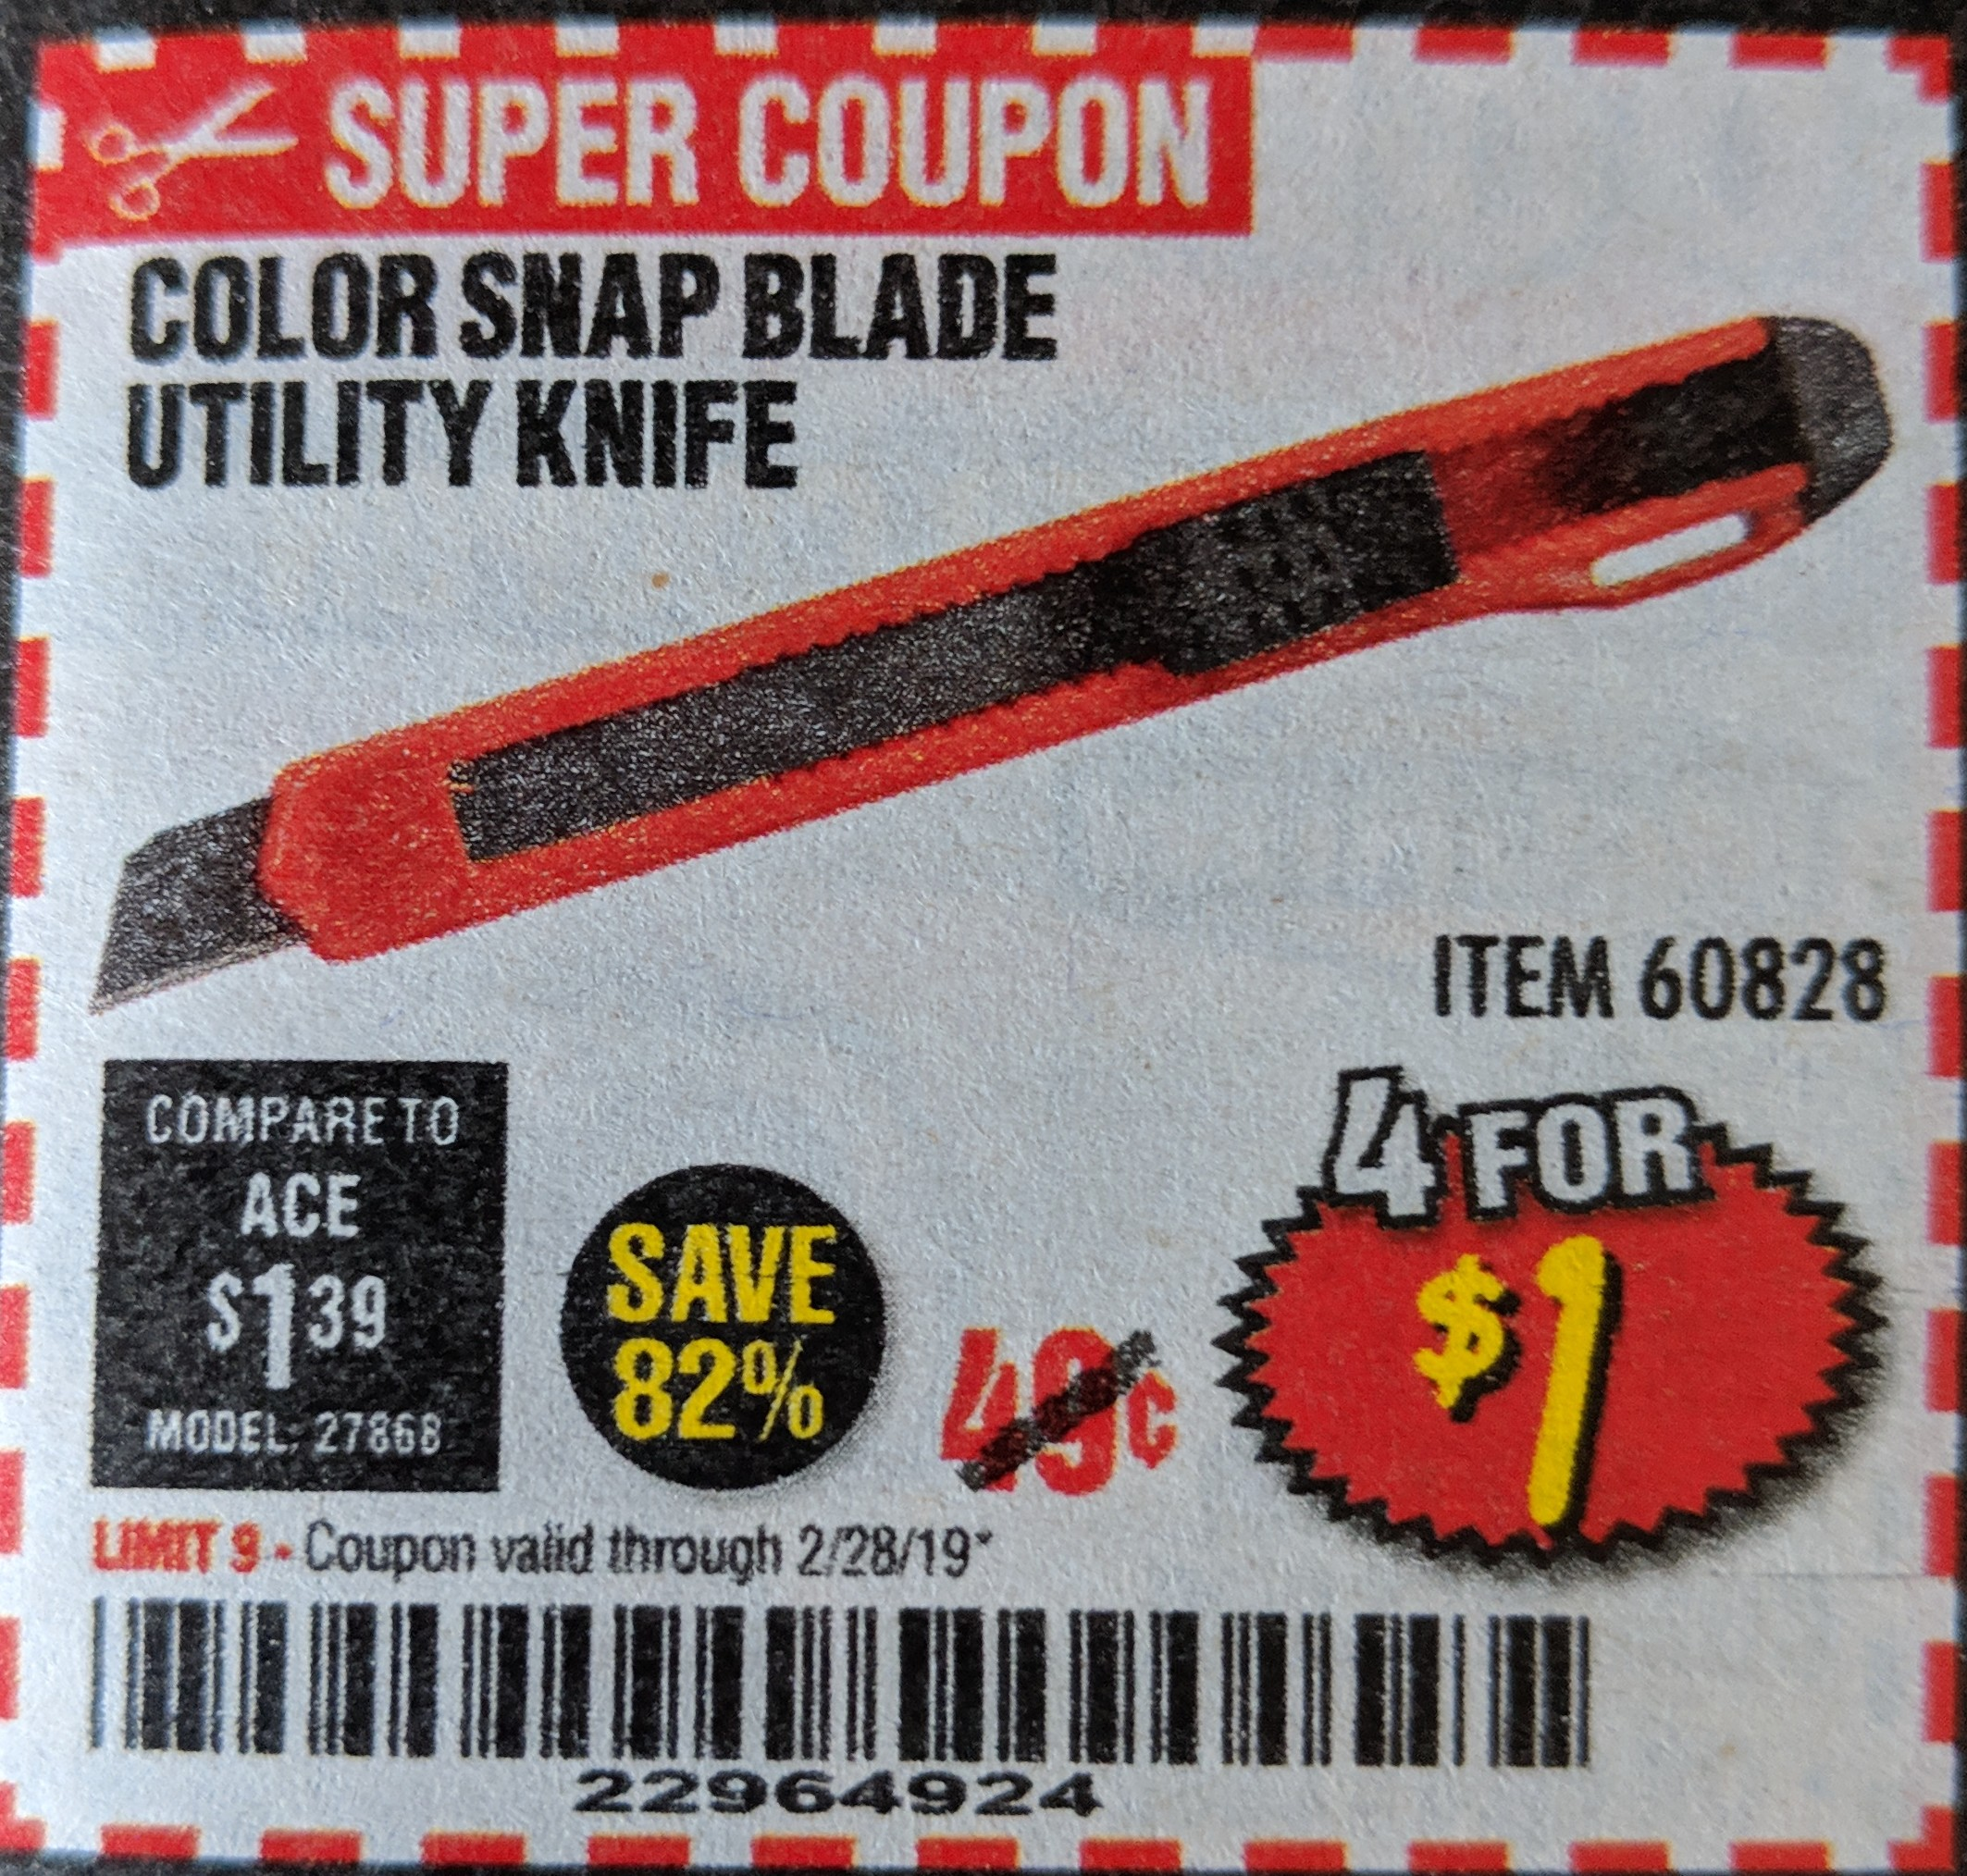 www.hfqpdb.com - COLOR SNAP BLADE UTILITY KNIFE Lot No. 60828